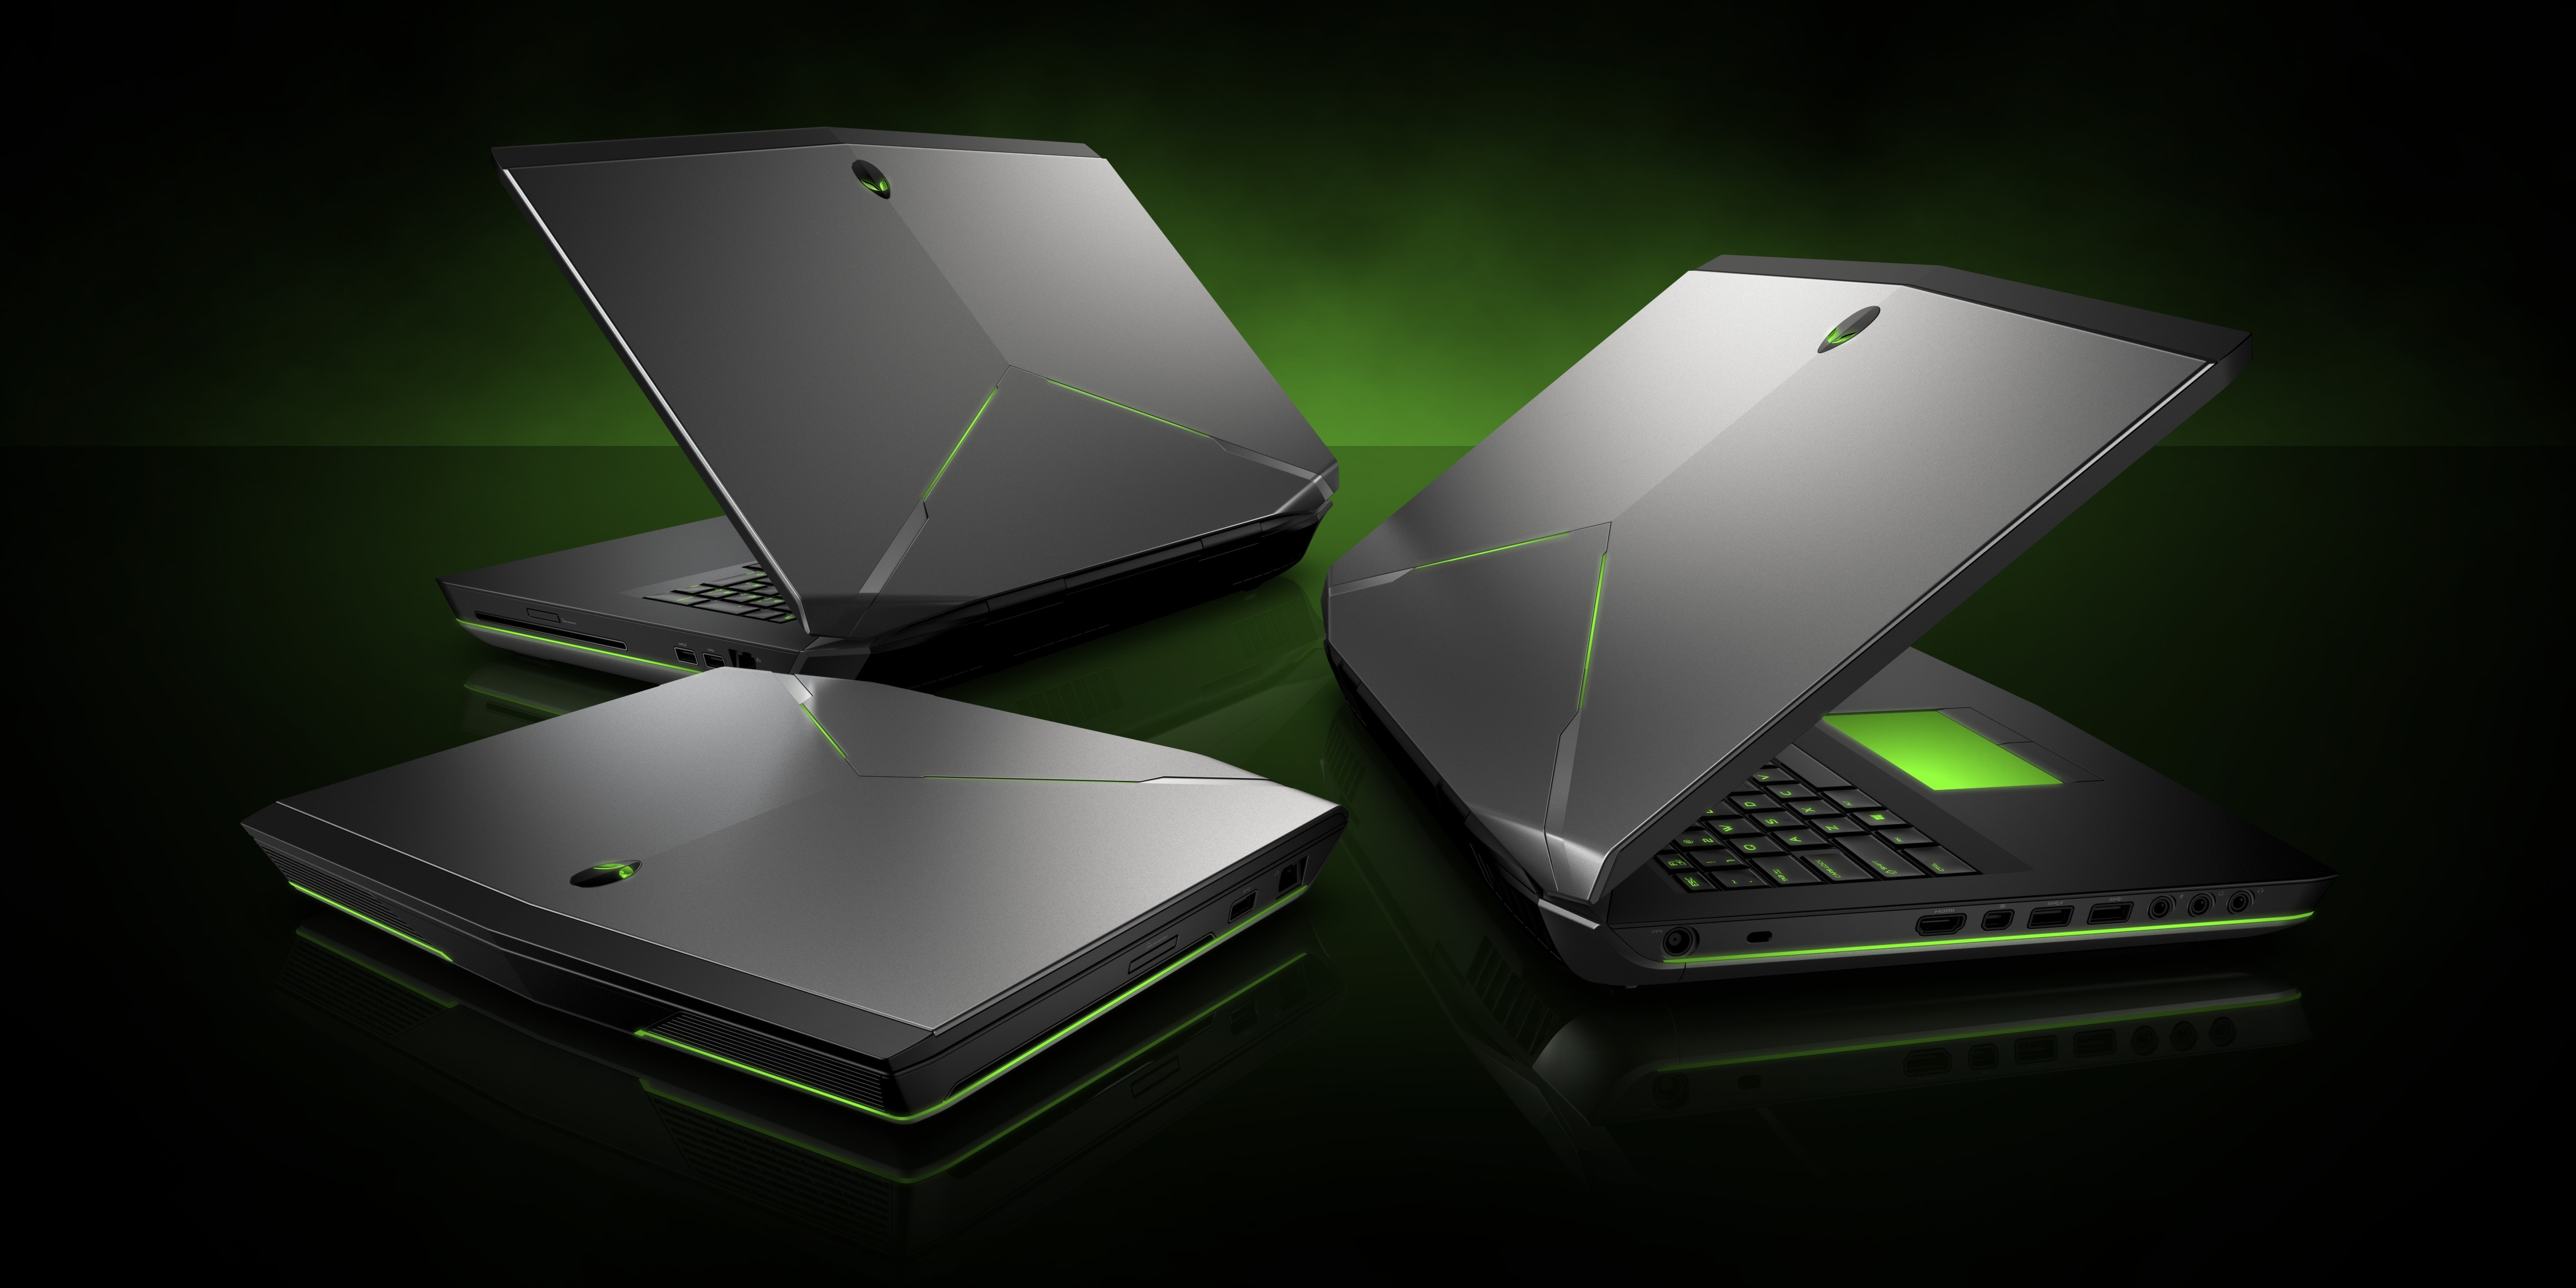 [Press Release] Alienware releases new high-performance PC gaming laptops